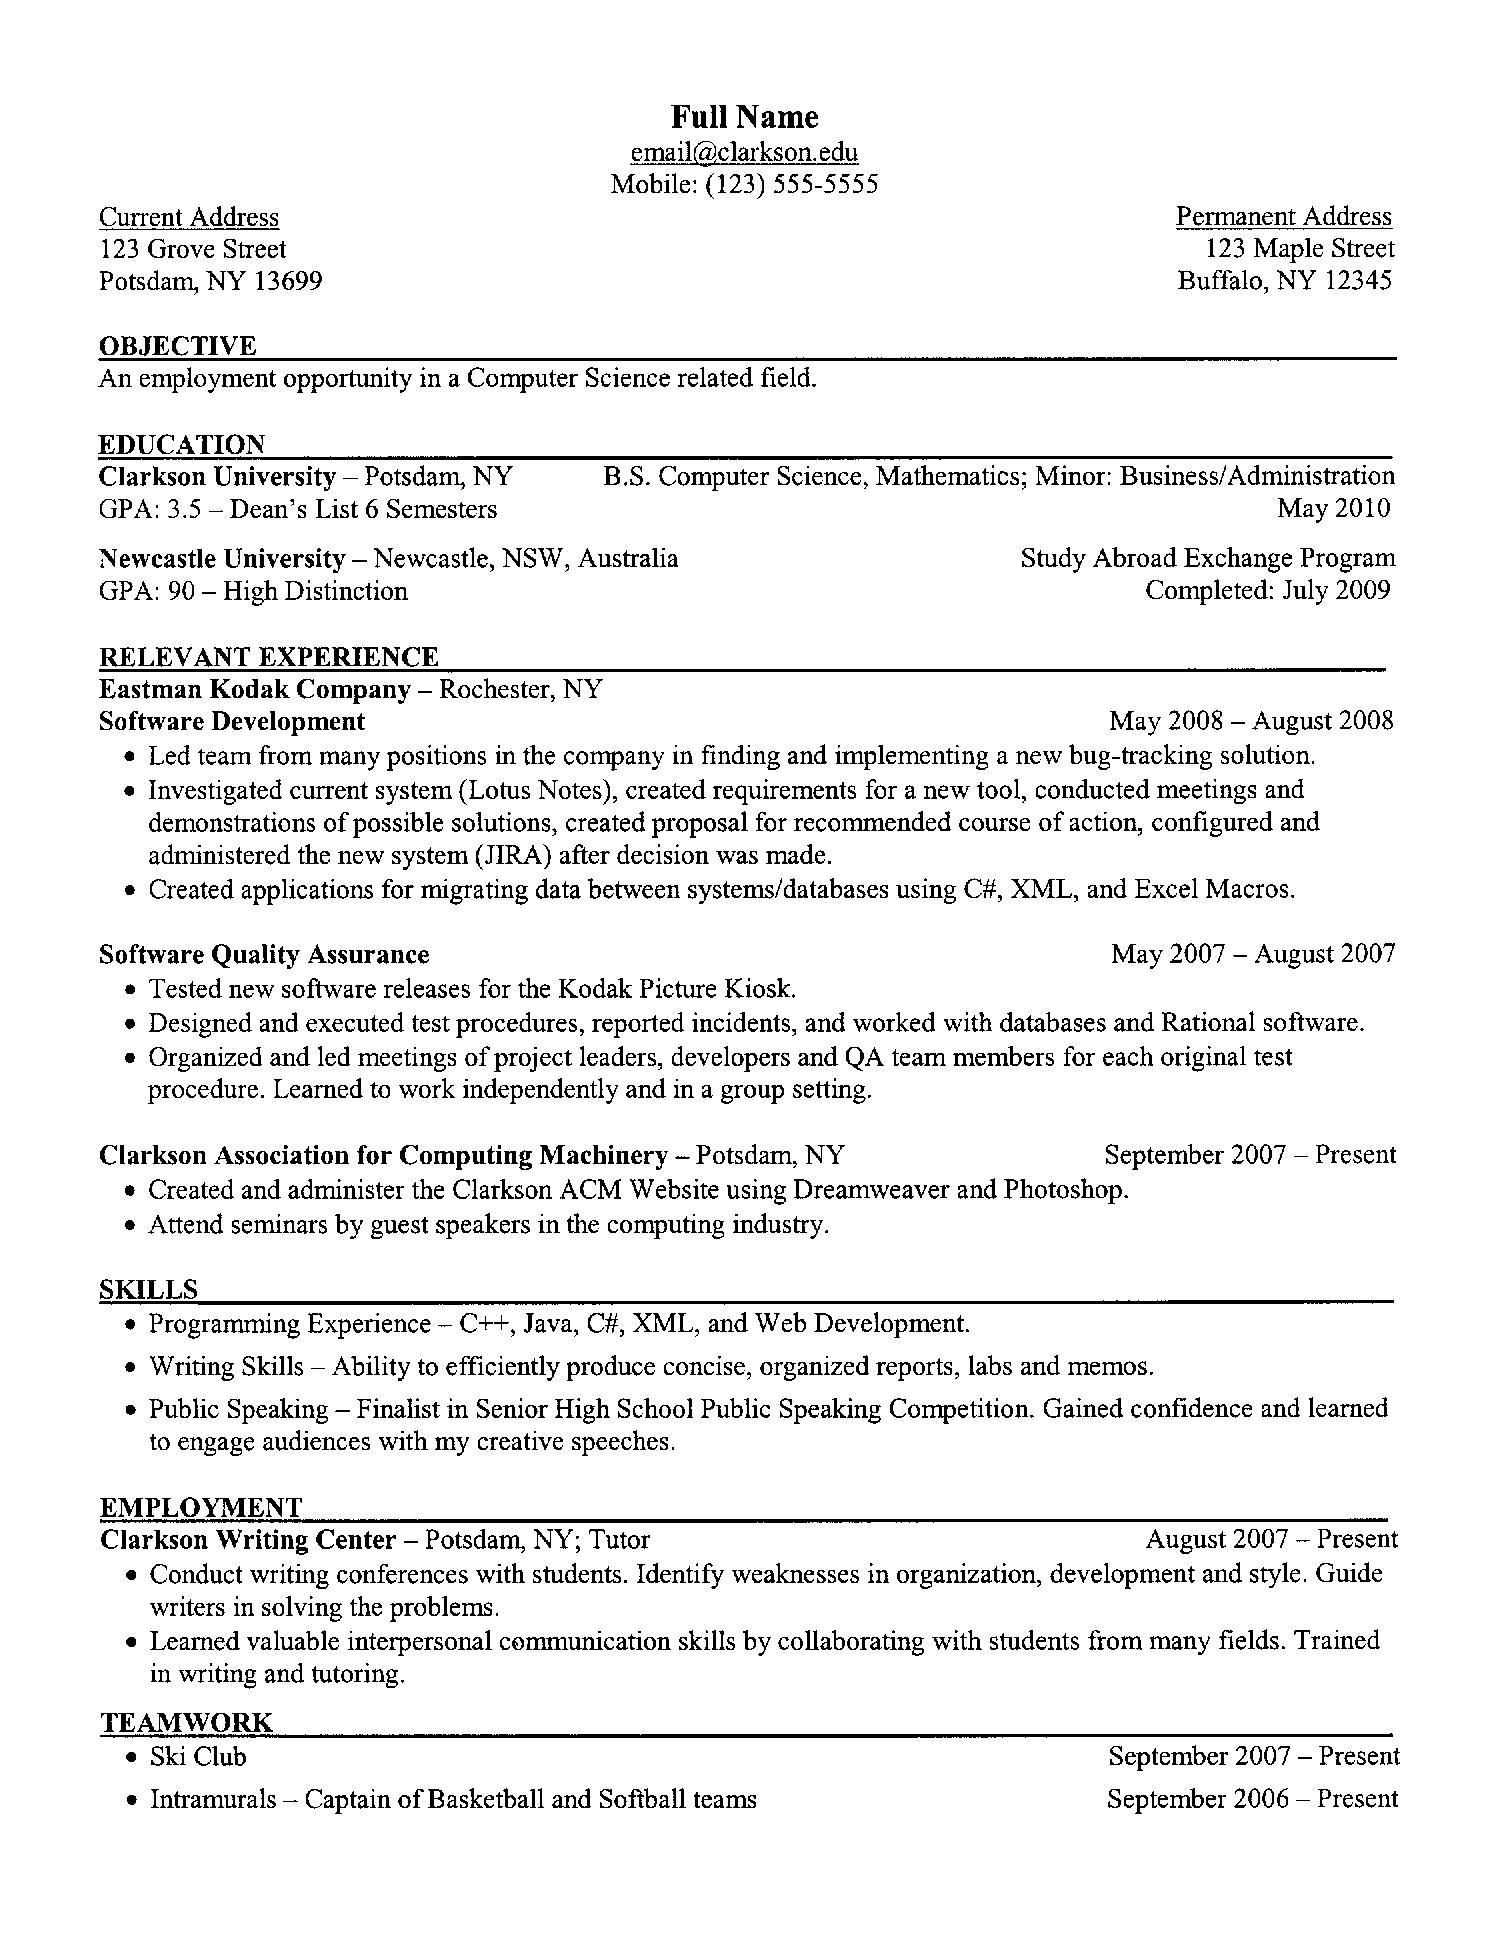 Resume Vitae Sample In Word Format Free Download Resume Format For